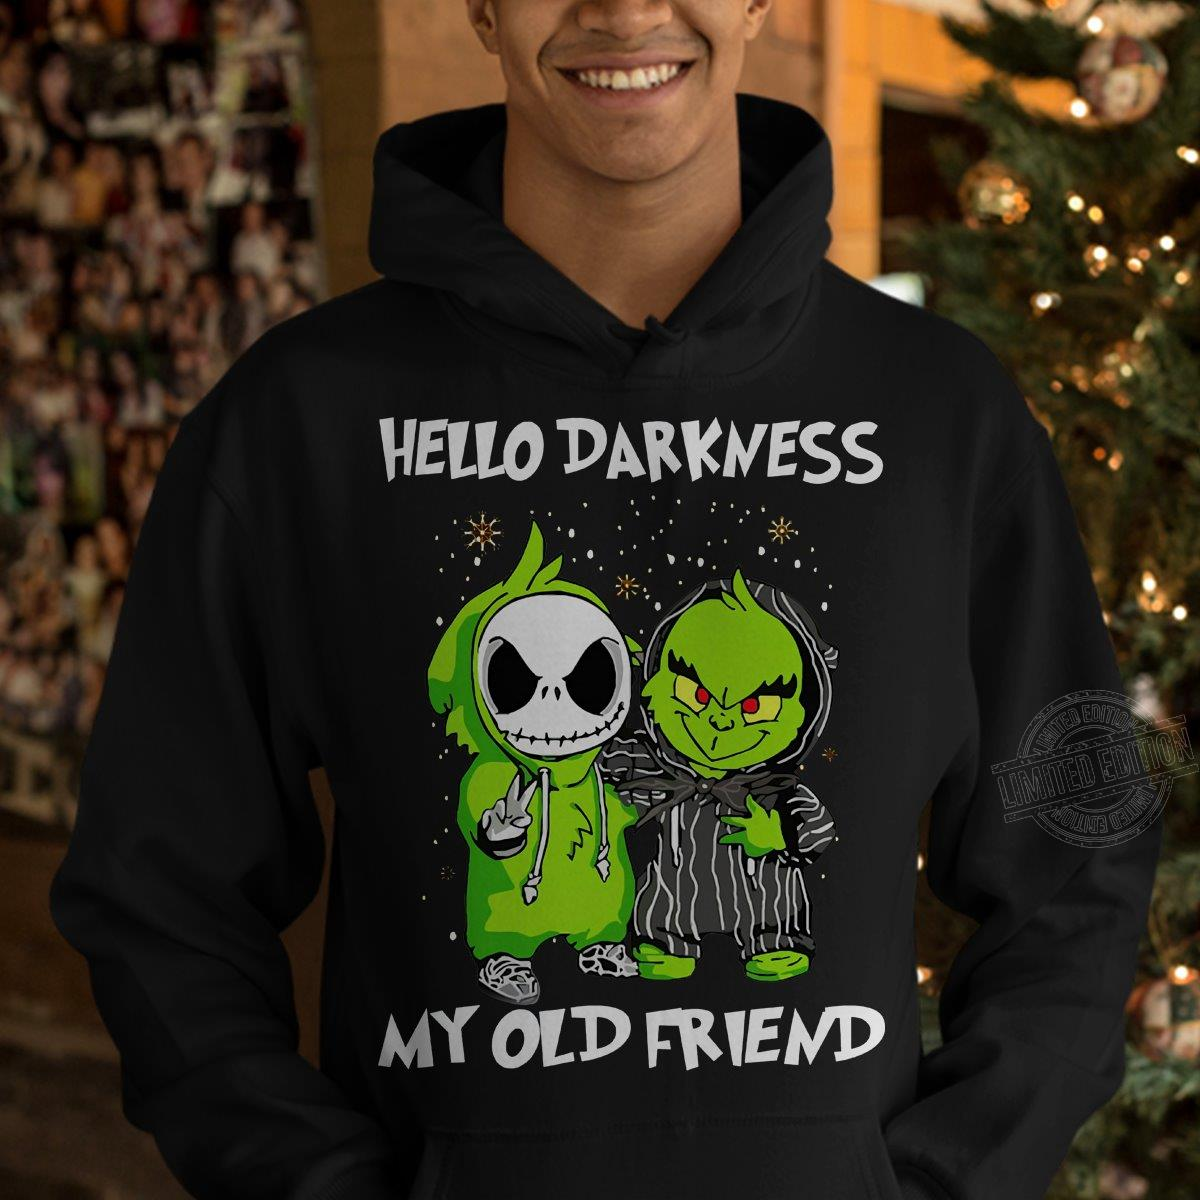 Merry Christmas Baby Jack Skellington And Grinch Hello Darkness My Old Friend Shirt